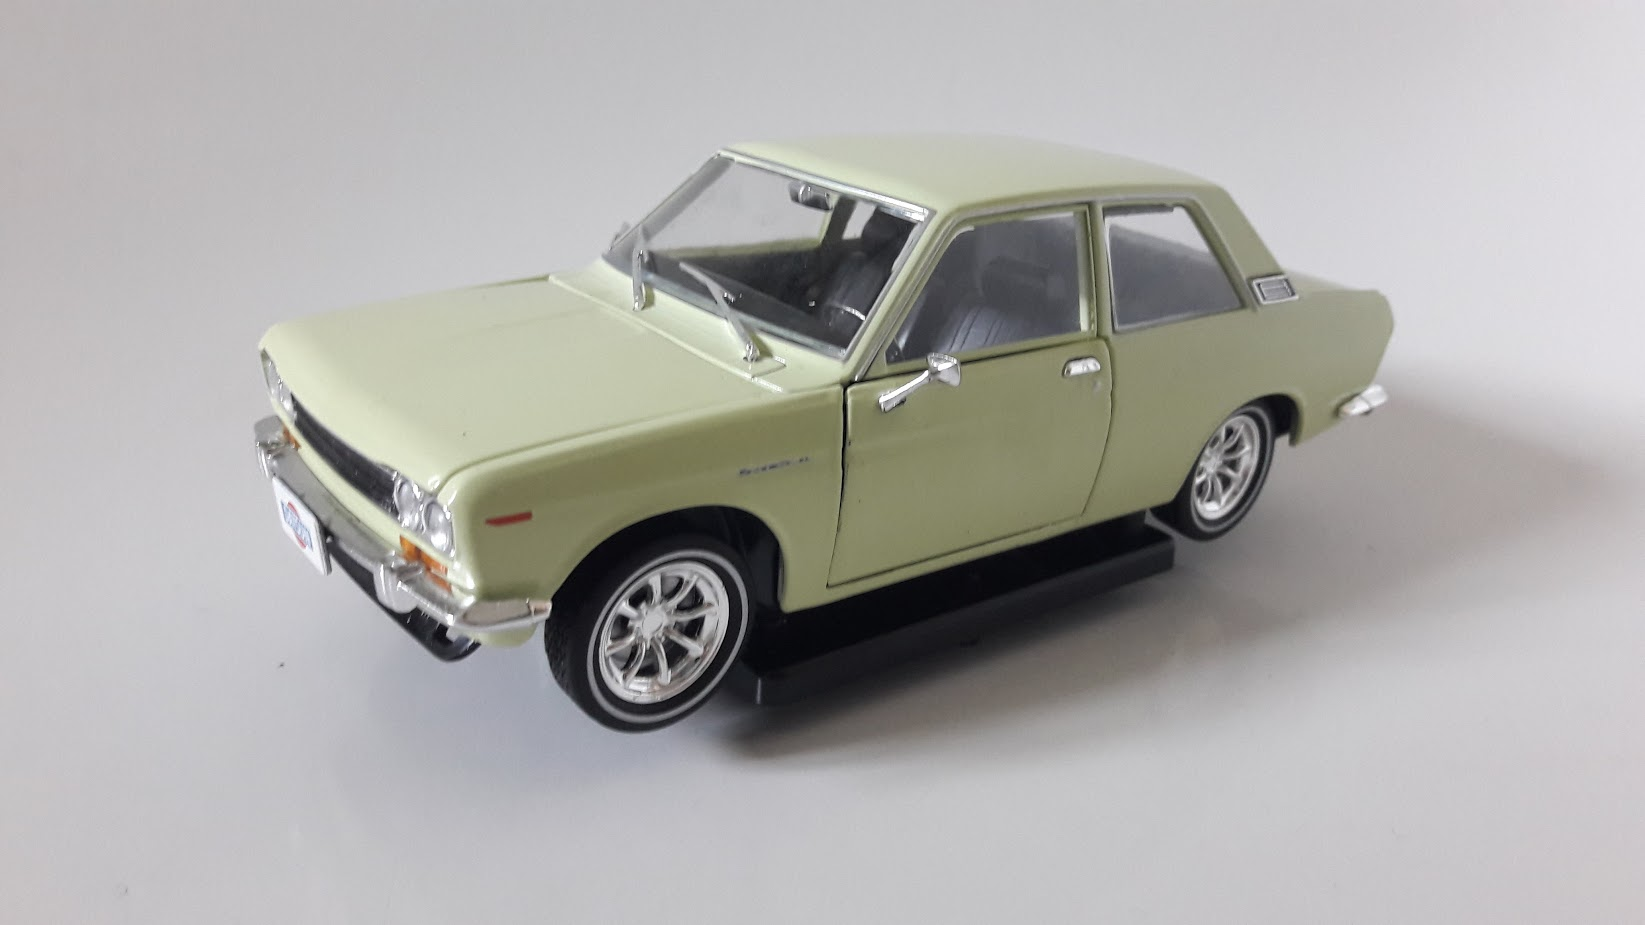 Datsun 510 Toy Car, Die Cast, And Hot Wheels (1970) front image (front cover)